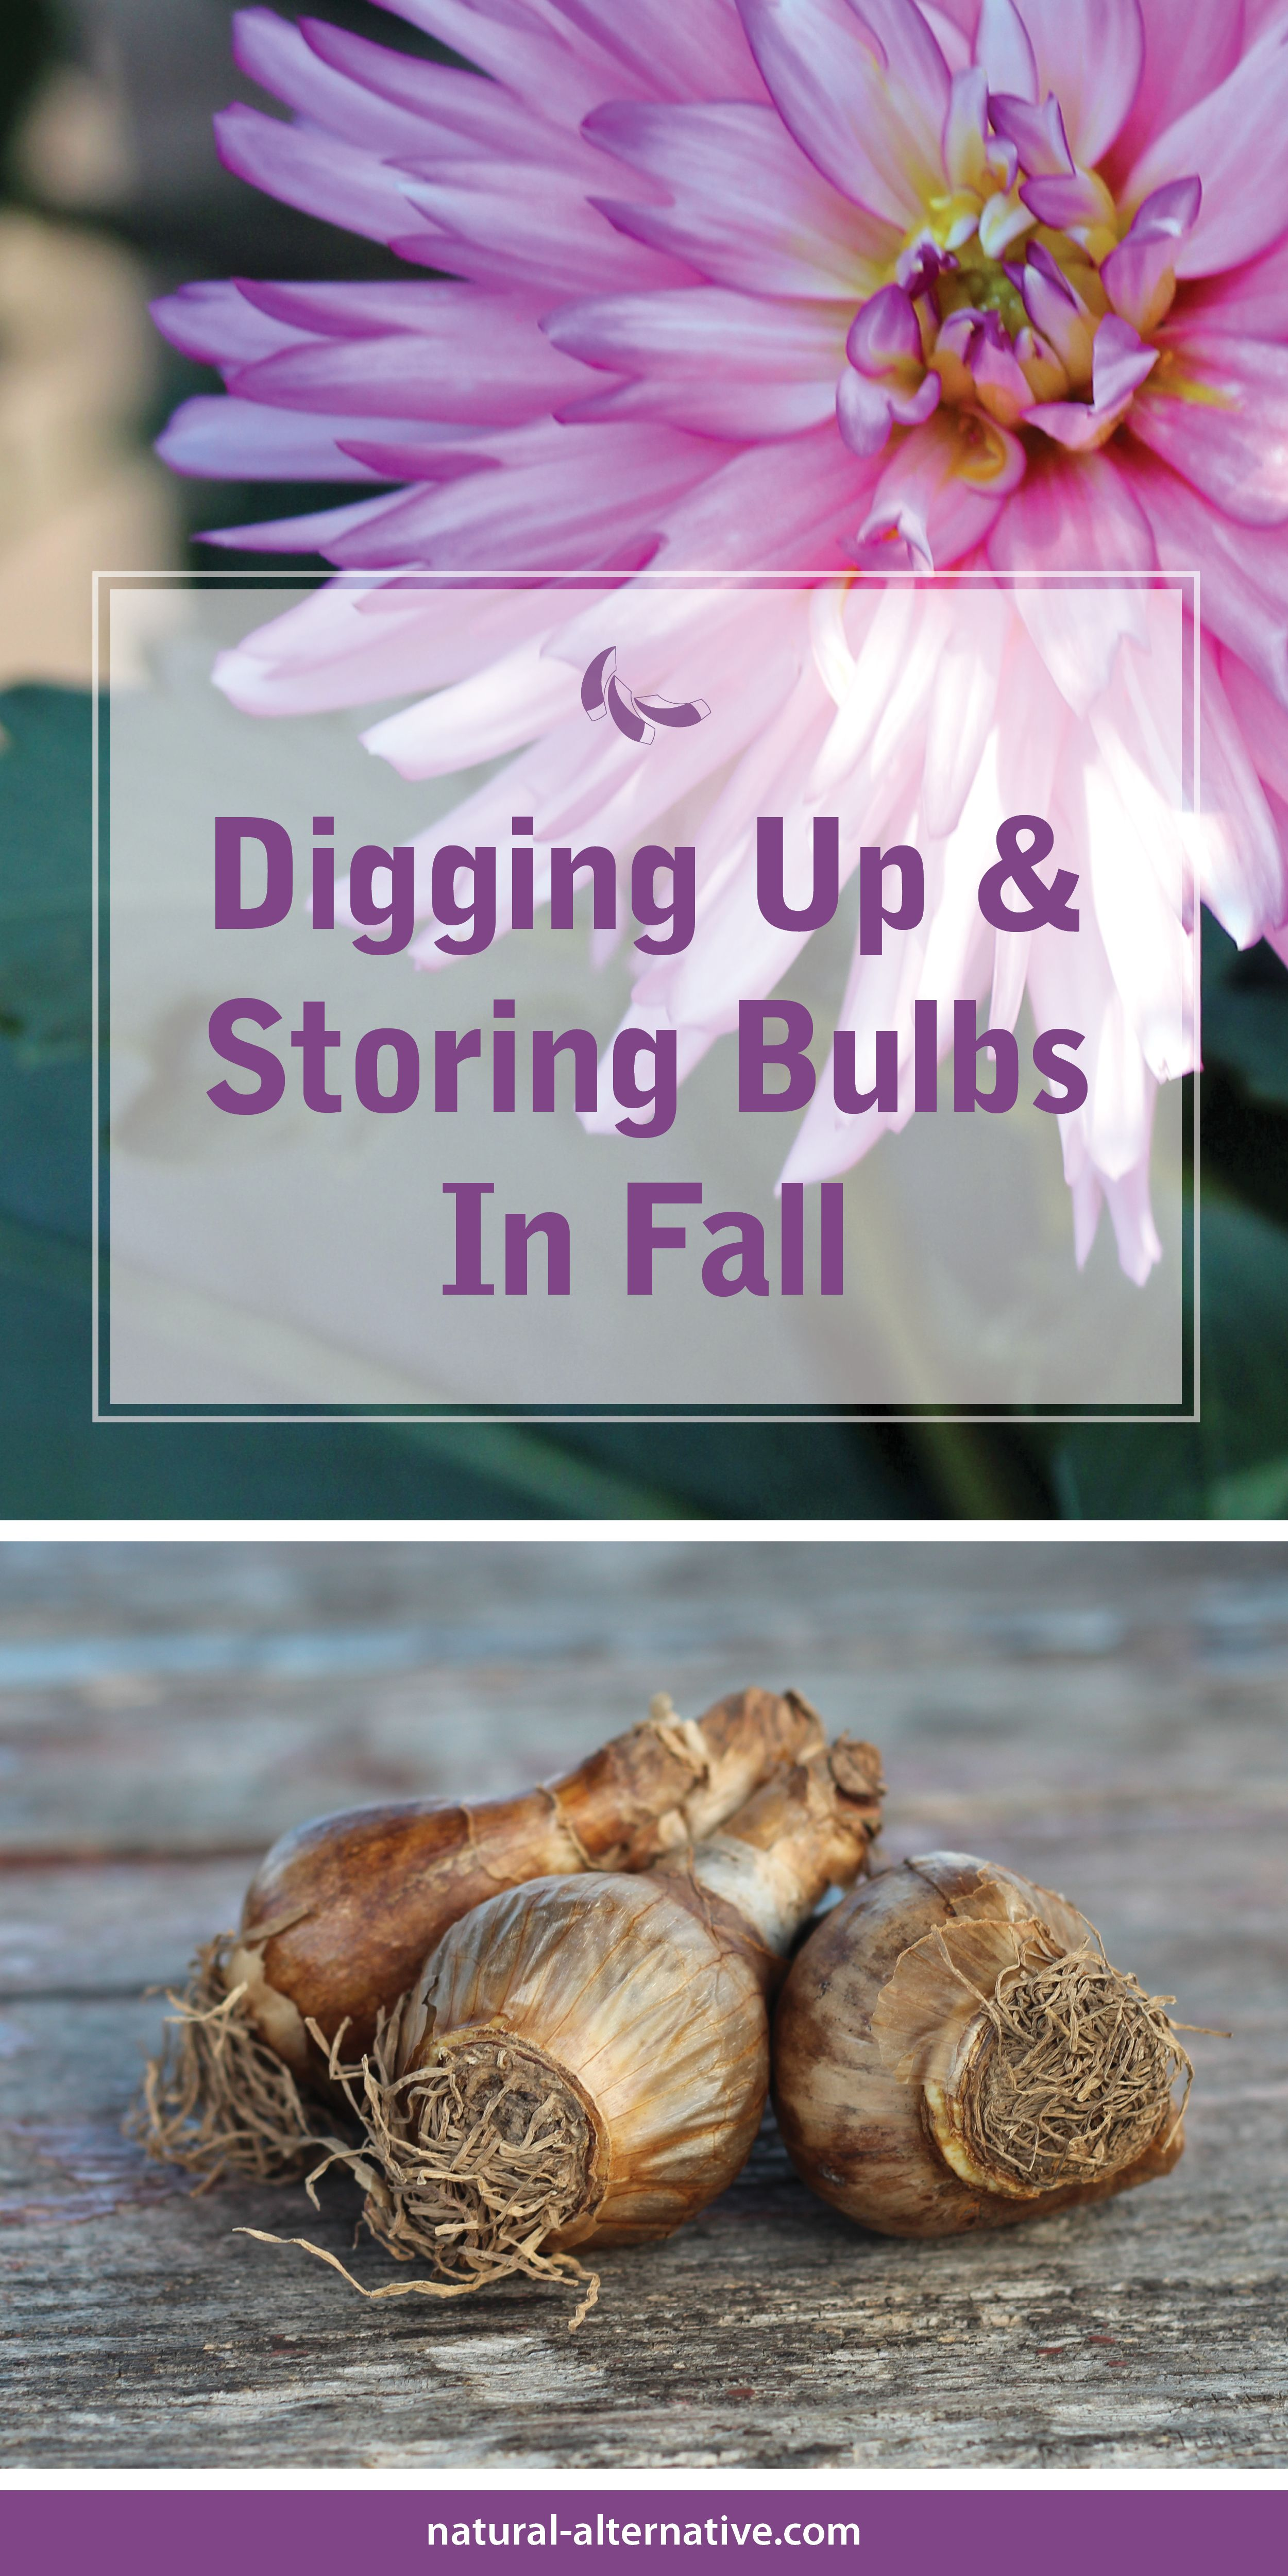 when to dig up canna bulbs